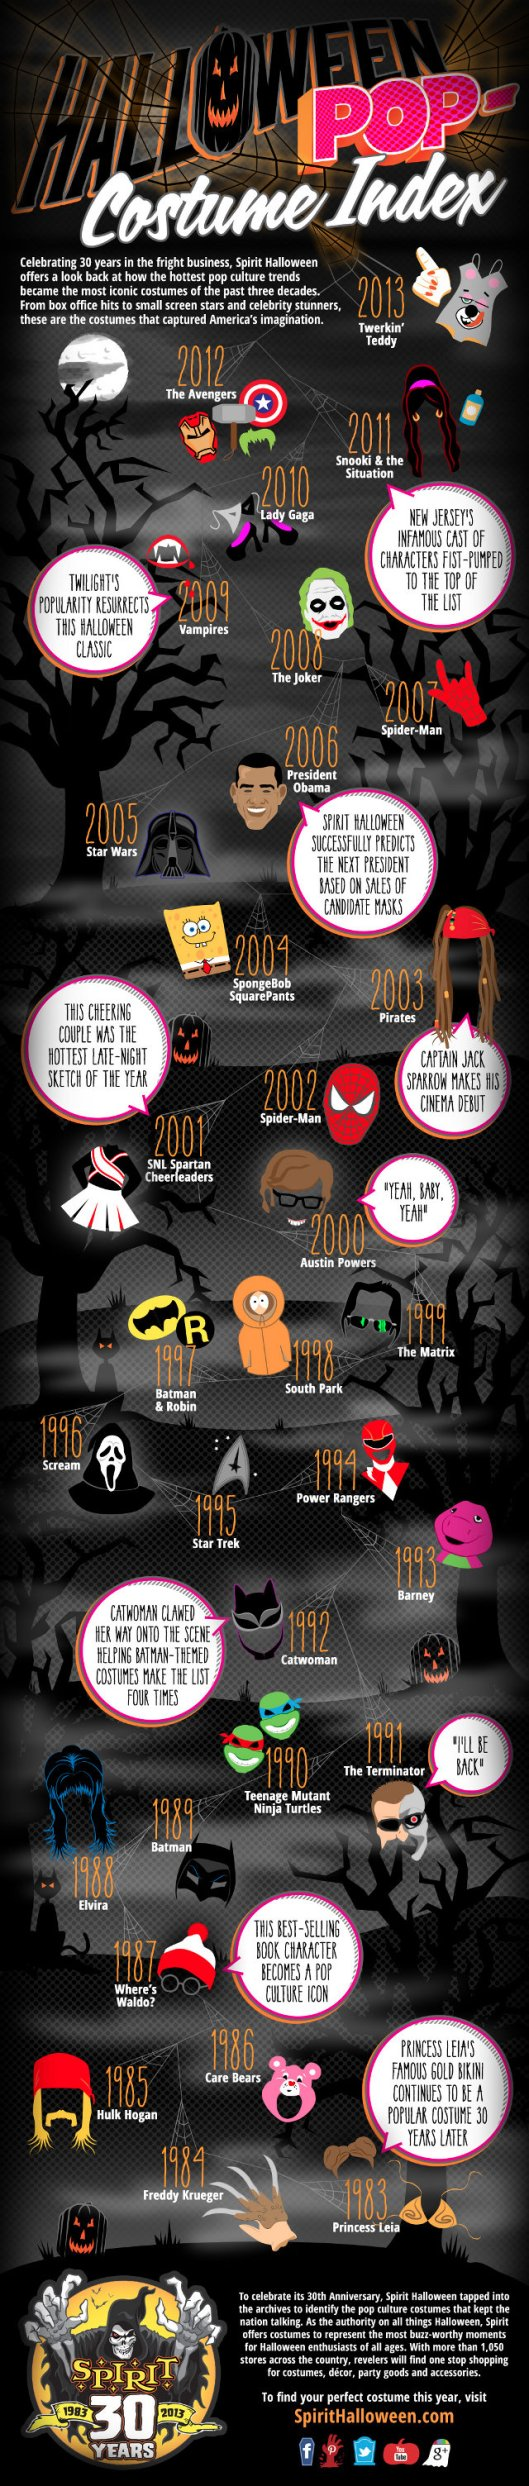 30 Years of The Most Popular Halloween Costumes Source: Spirit Halloween